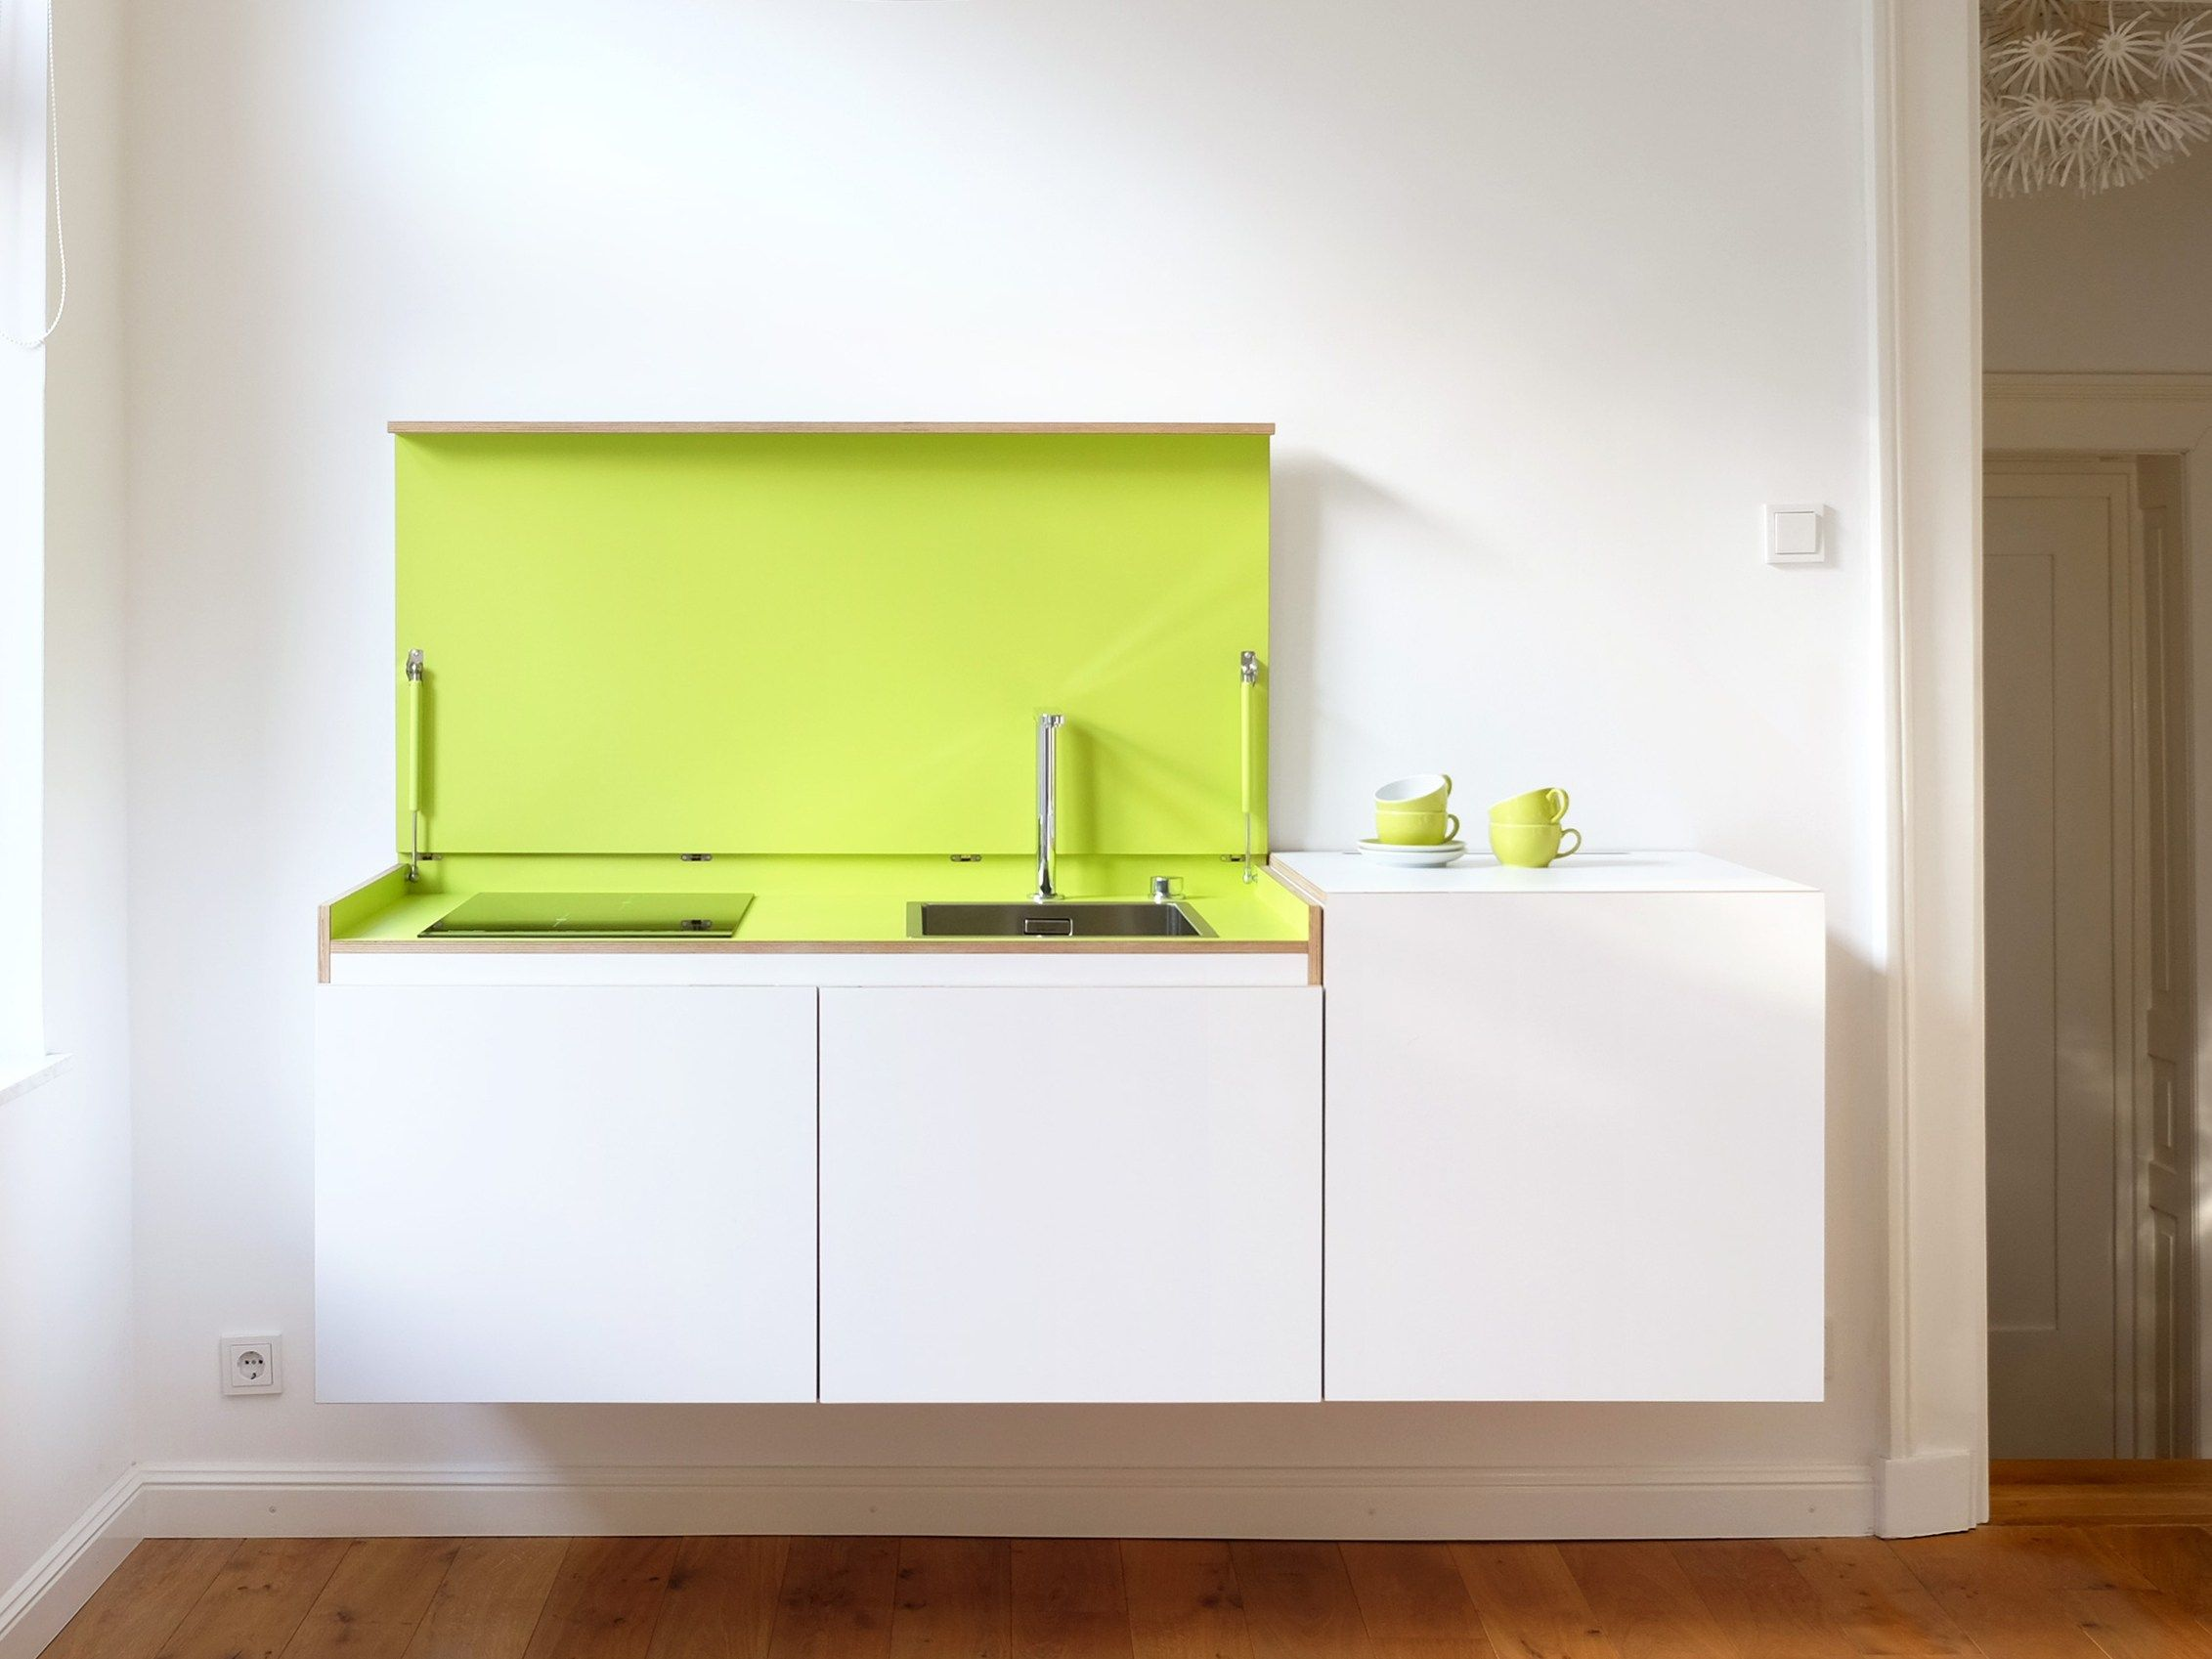 Modular plywood mini kitchen MINIKI by miniki design Tobias ...